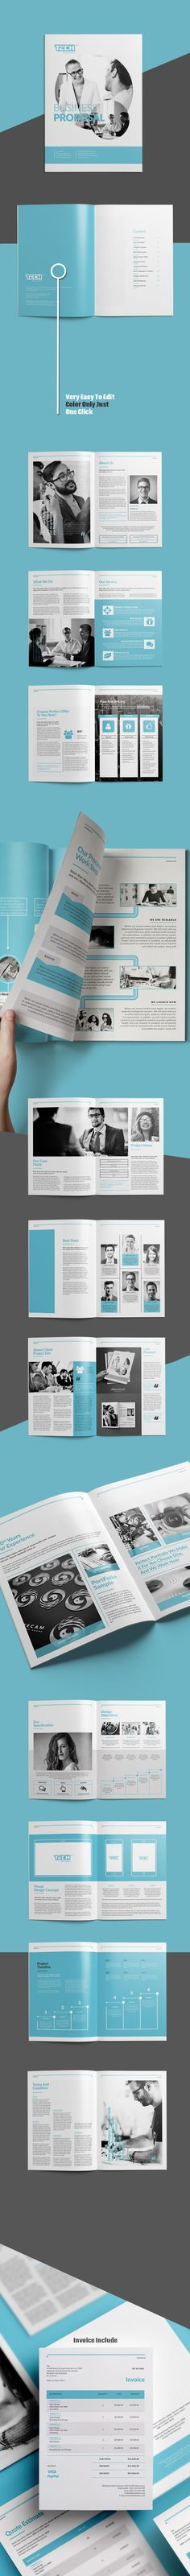 Indesign Business Proposal Template Template Pinterest - business propsal template